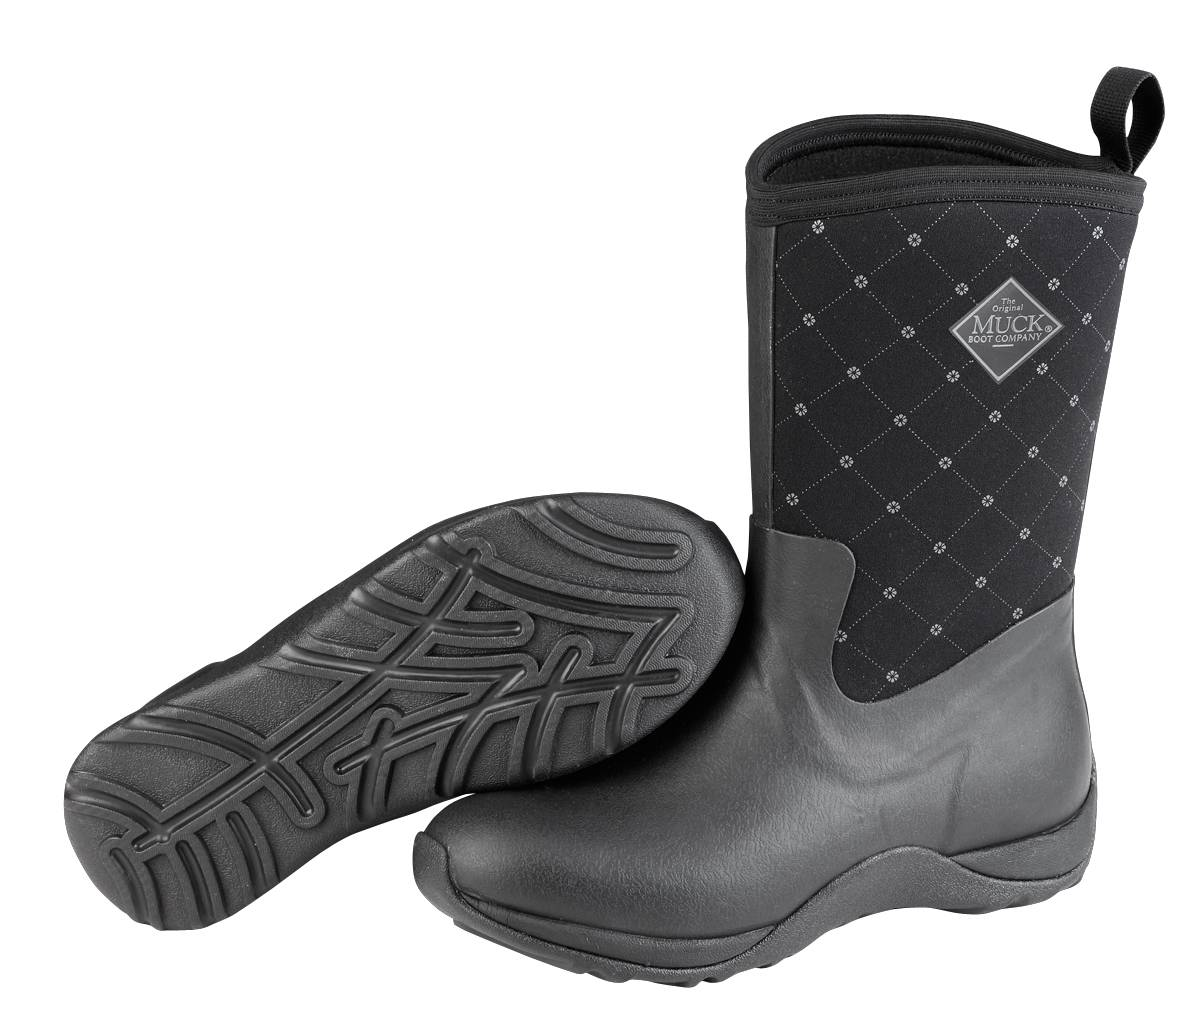 Muck Boots Arctic Weekend Mid-Height Boots - Ladies - Black Quilt